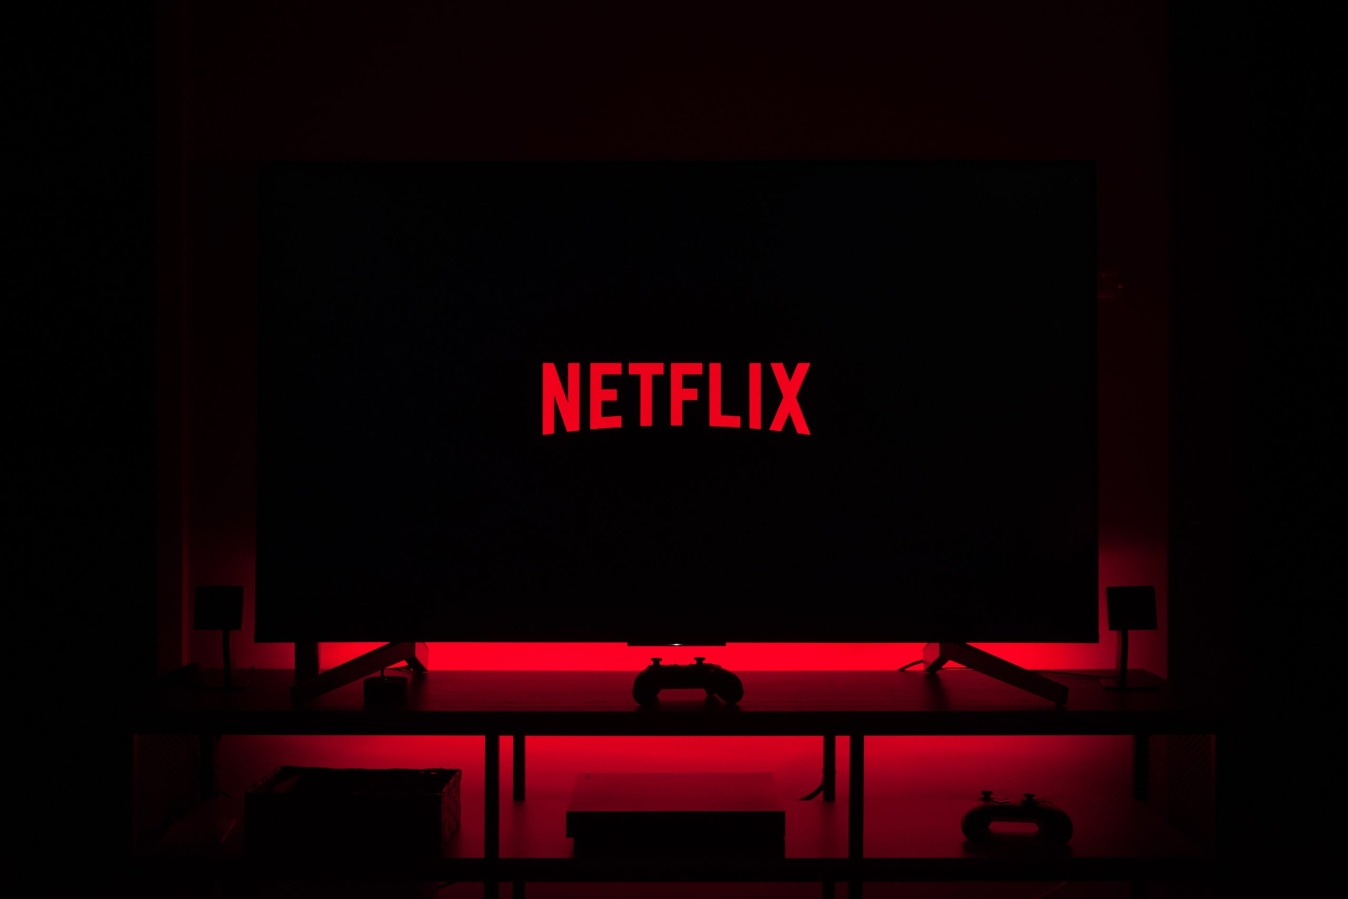 100 NETFLIX PREMIUM ACCOUNT (FOR RESELLERS)